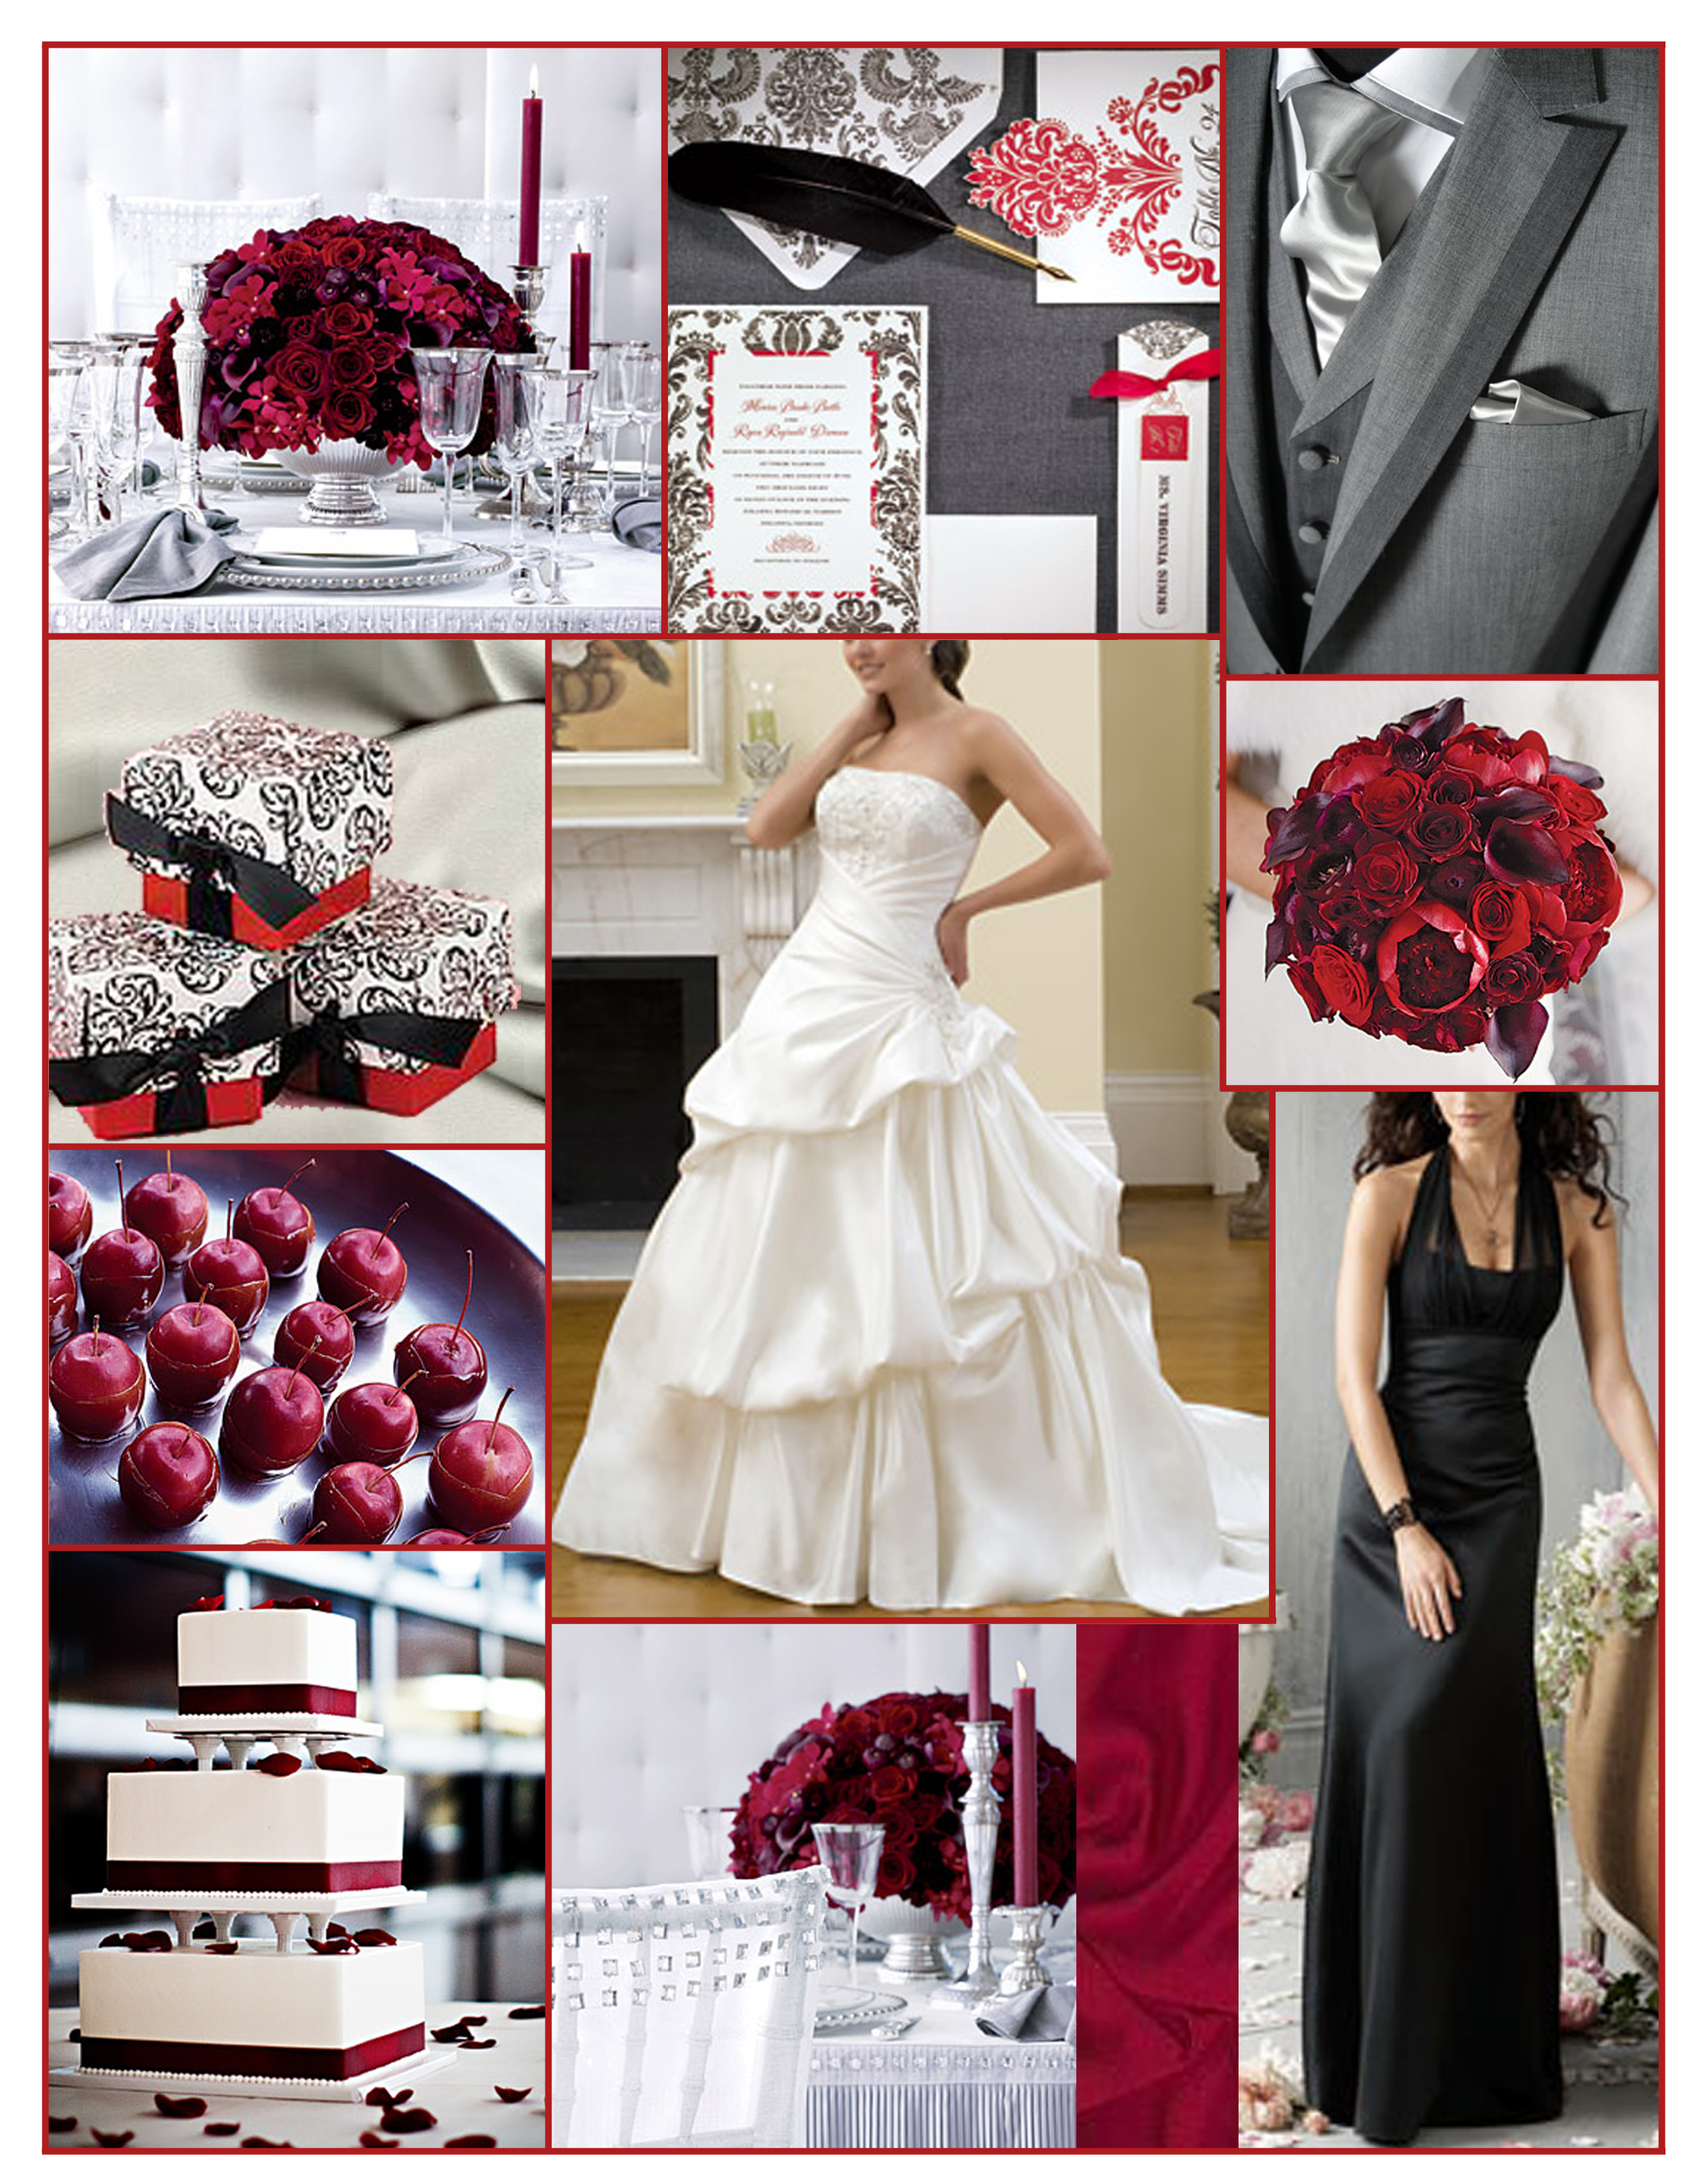 Inspiration, Reception, Flowers & Decor, Bridesmaids, Bridesmaids Dresses, Wedding Dresses, Cakes, Fashion, white, red, gray, black, cake, dress, Bridesmaid Bouquets, Flowers, Grey, Board, Jim hjelm occasions, Flower Wedding Dresses